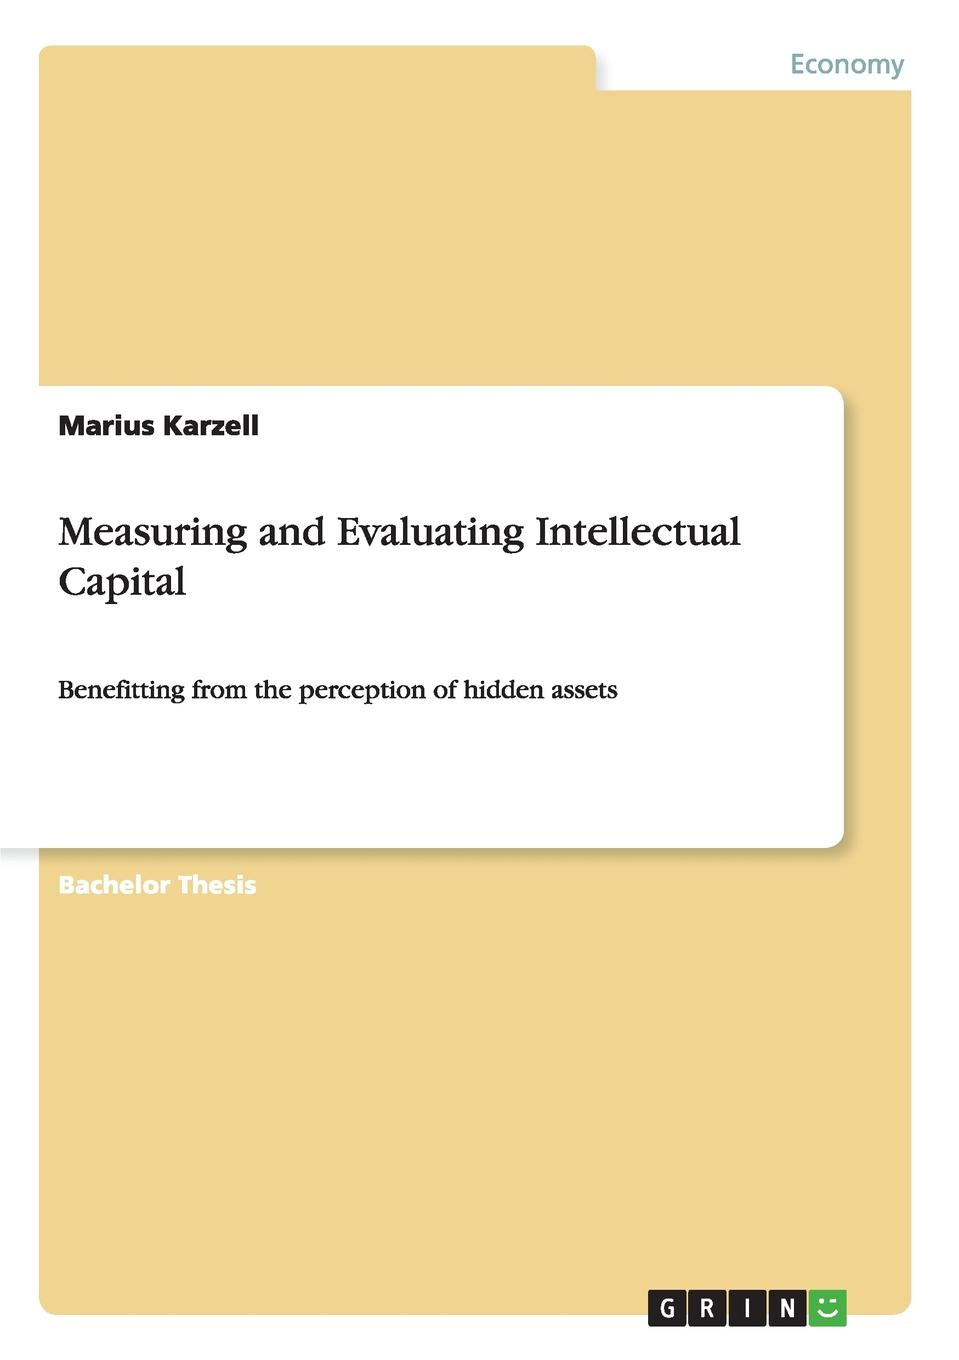 Marius Karzell Measuring and Evaluating Intellectual Capital edna pasher the complete guide to knowledge management a strategic plan to leverage your company s intellectual capital